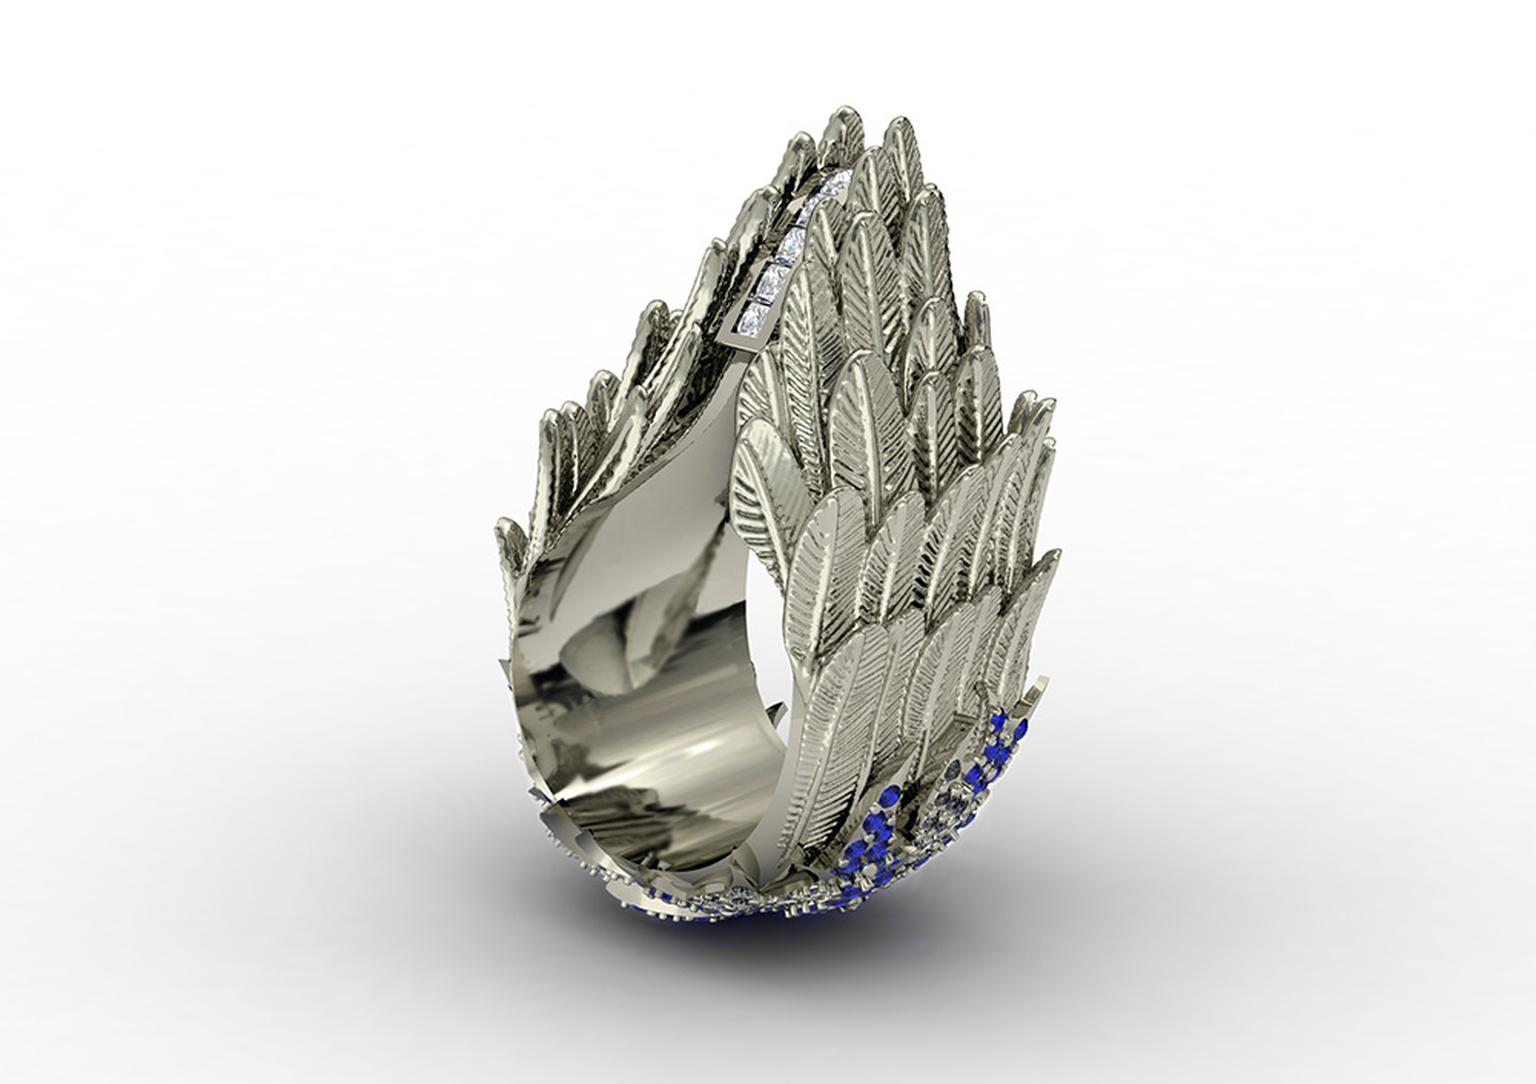 Jasmine Alexander Ascent Victorious white gold ring with sapphires and diamonds.